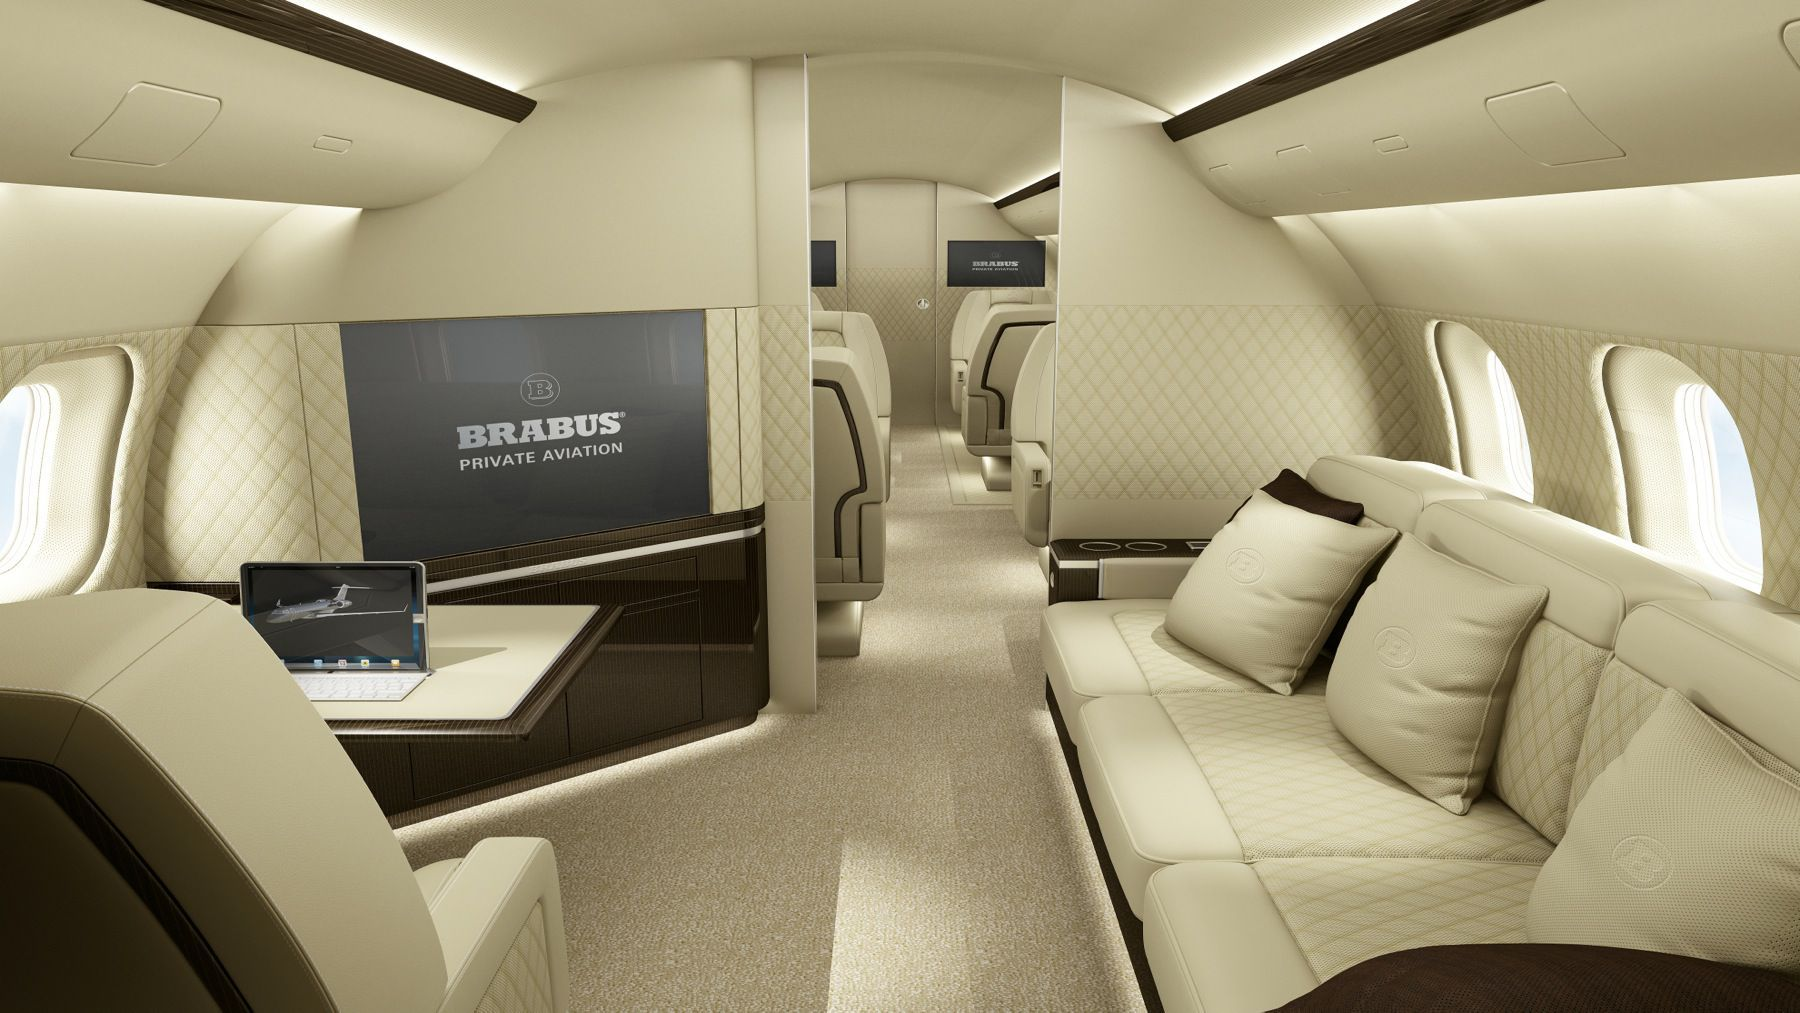 File embraer lineage 1000 interior forward cabin jpg wikimedia - The Most Luxurious Private Jet Interior Designs 02 Mr Goodlife The Online Magazine For The Goodlife Ultimate Luxury Jets Cars Motorhome Train